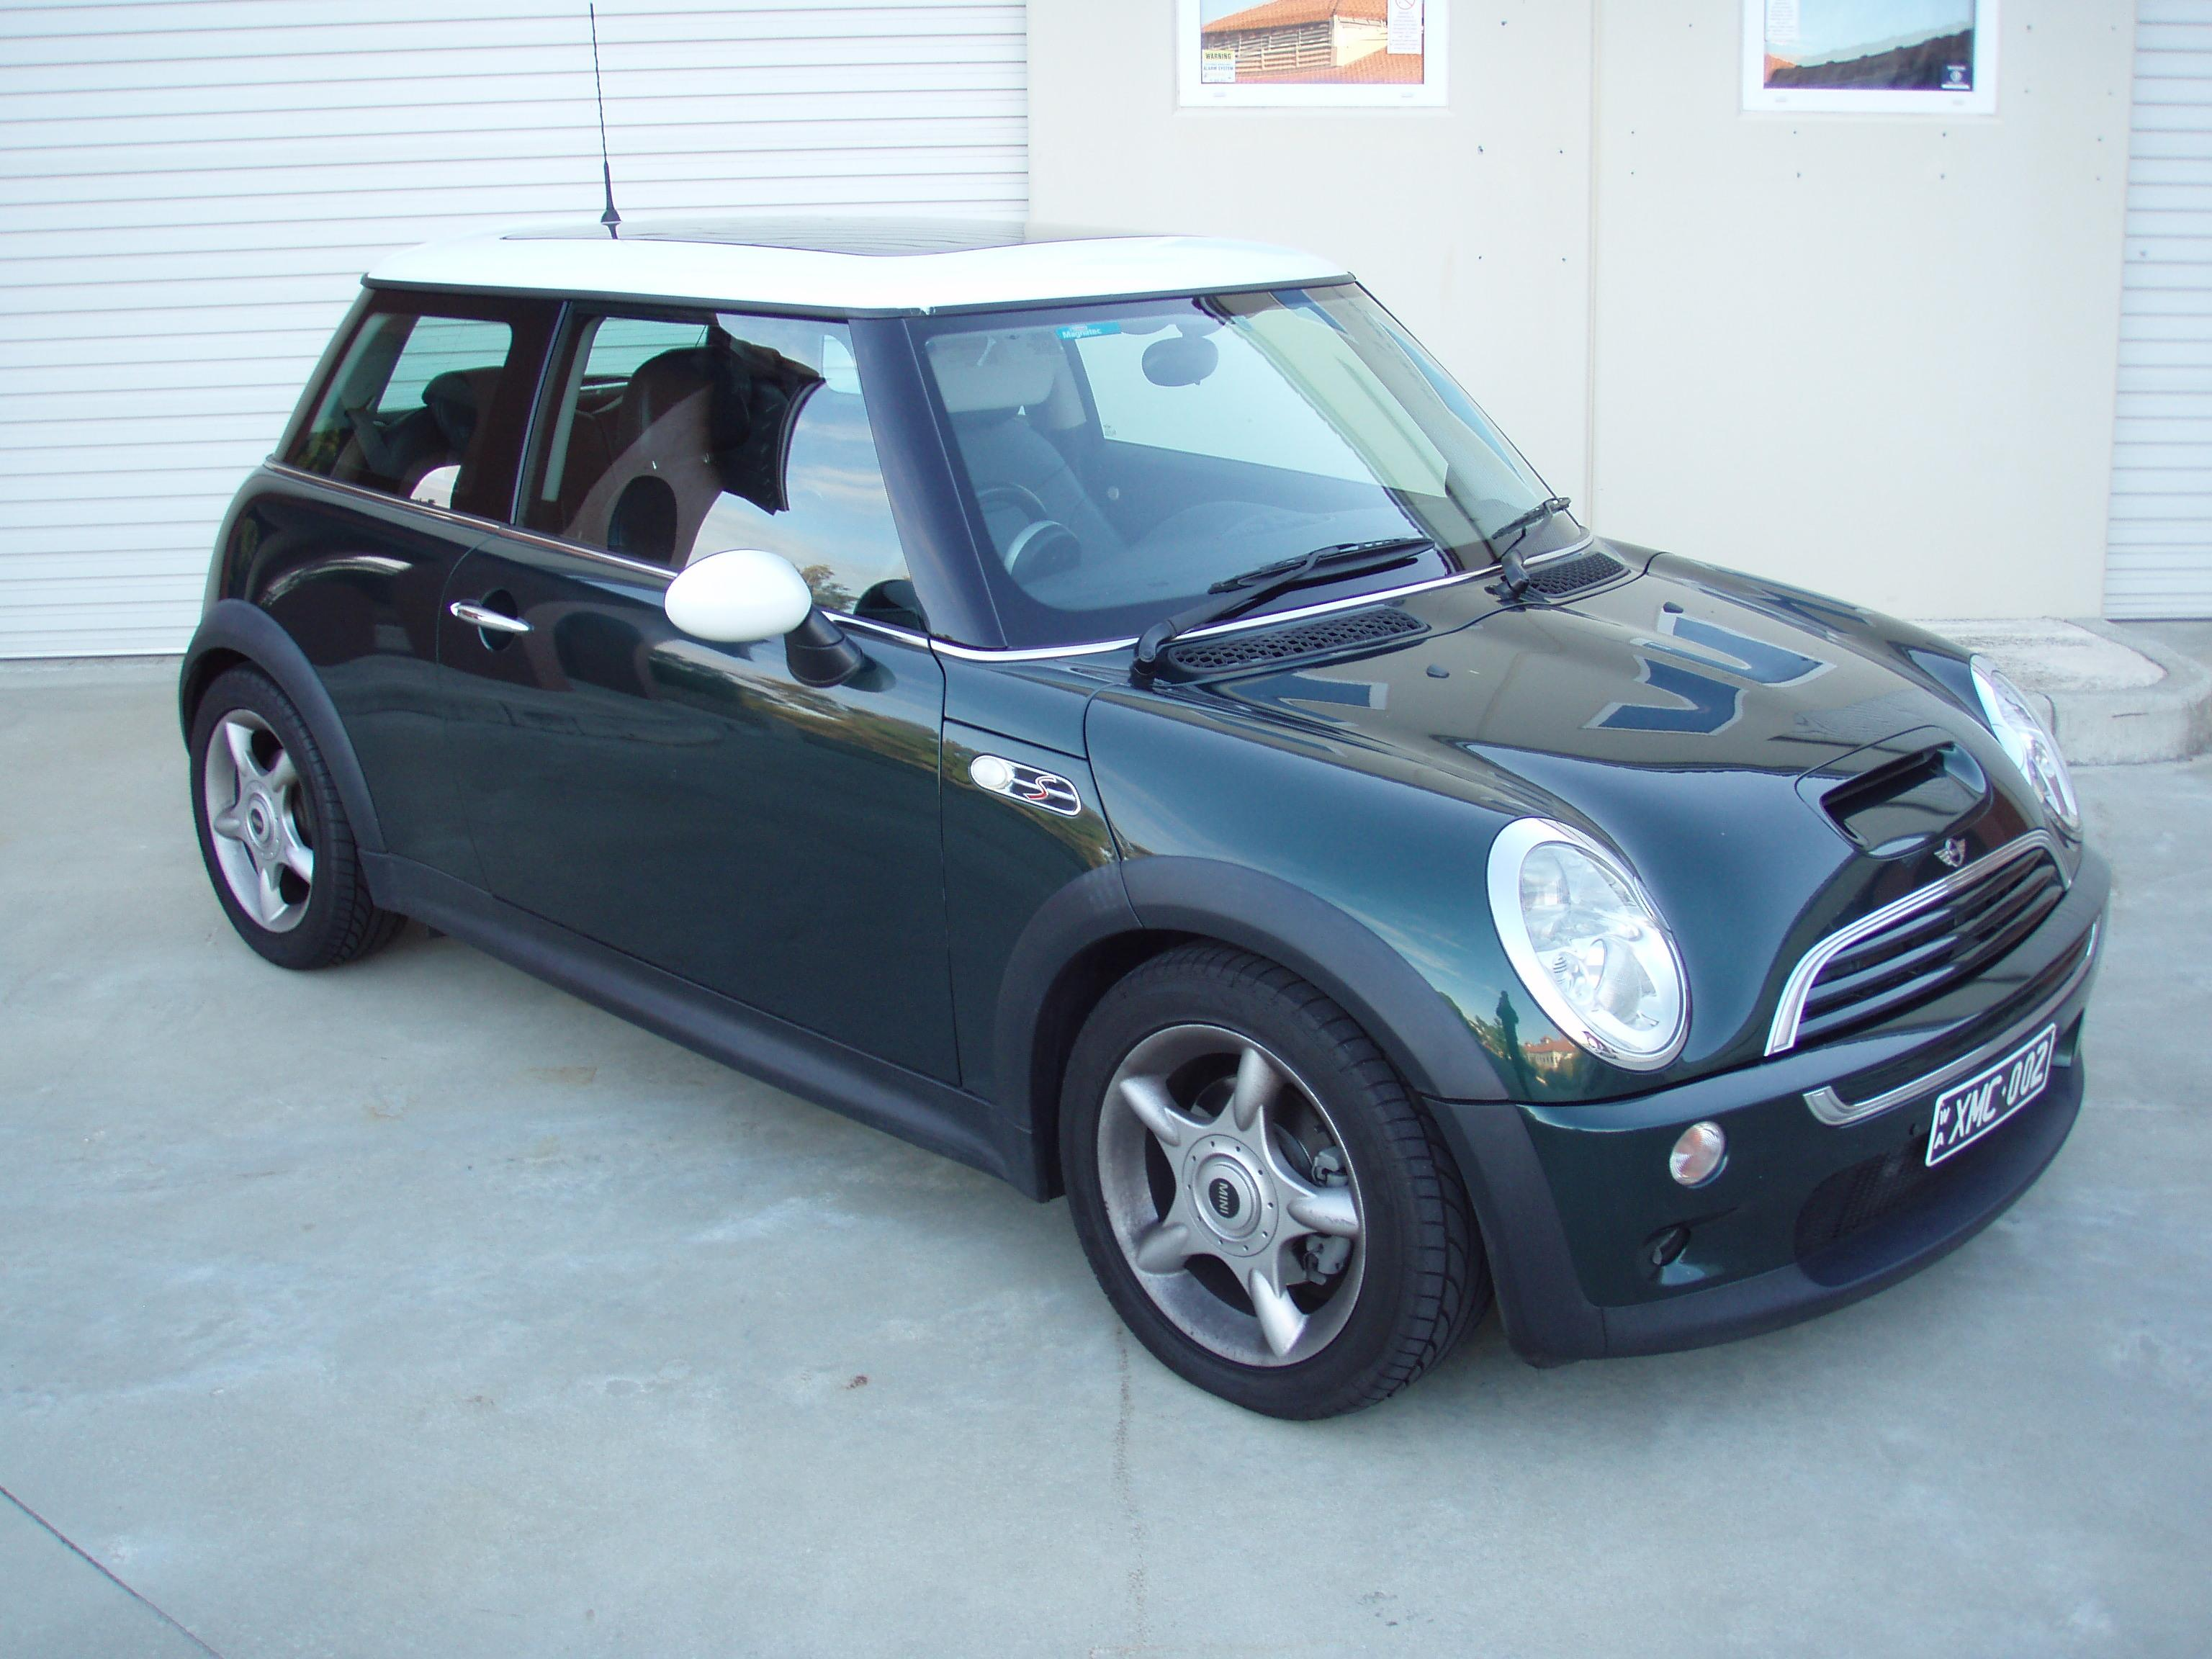 ali g 2002 mini coopers hatchback 2d specs photos modification info at cardomain. Black Bedroom Furniture Sets. Home Design Ideas